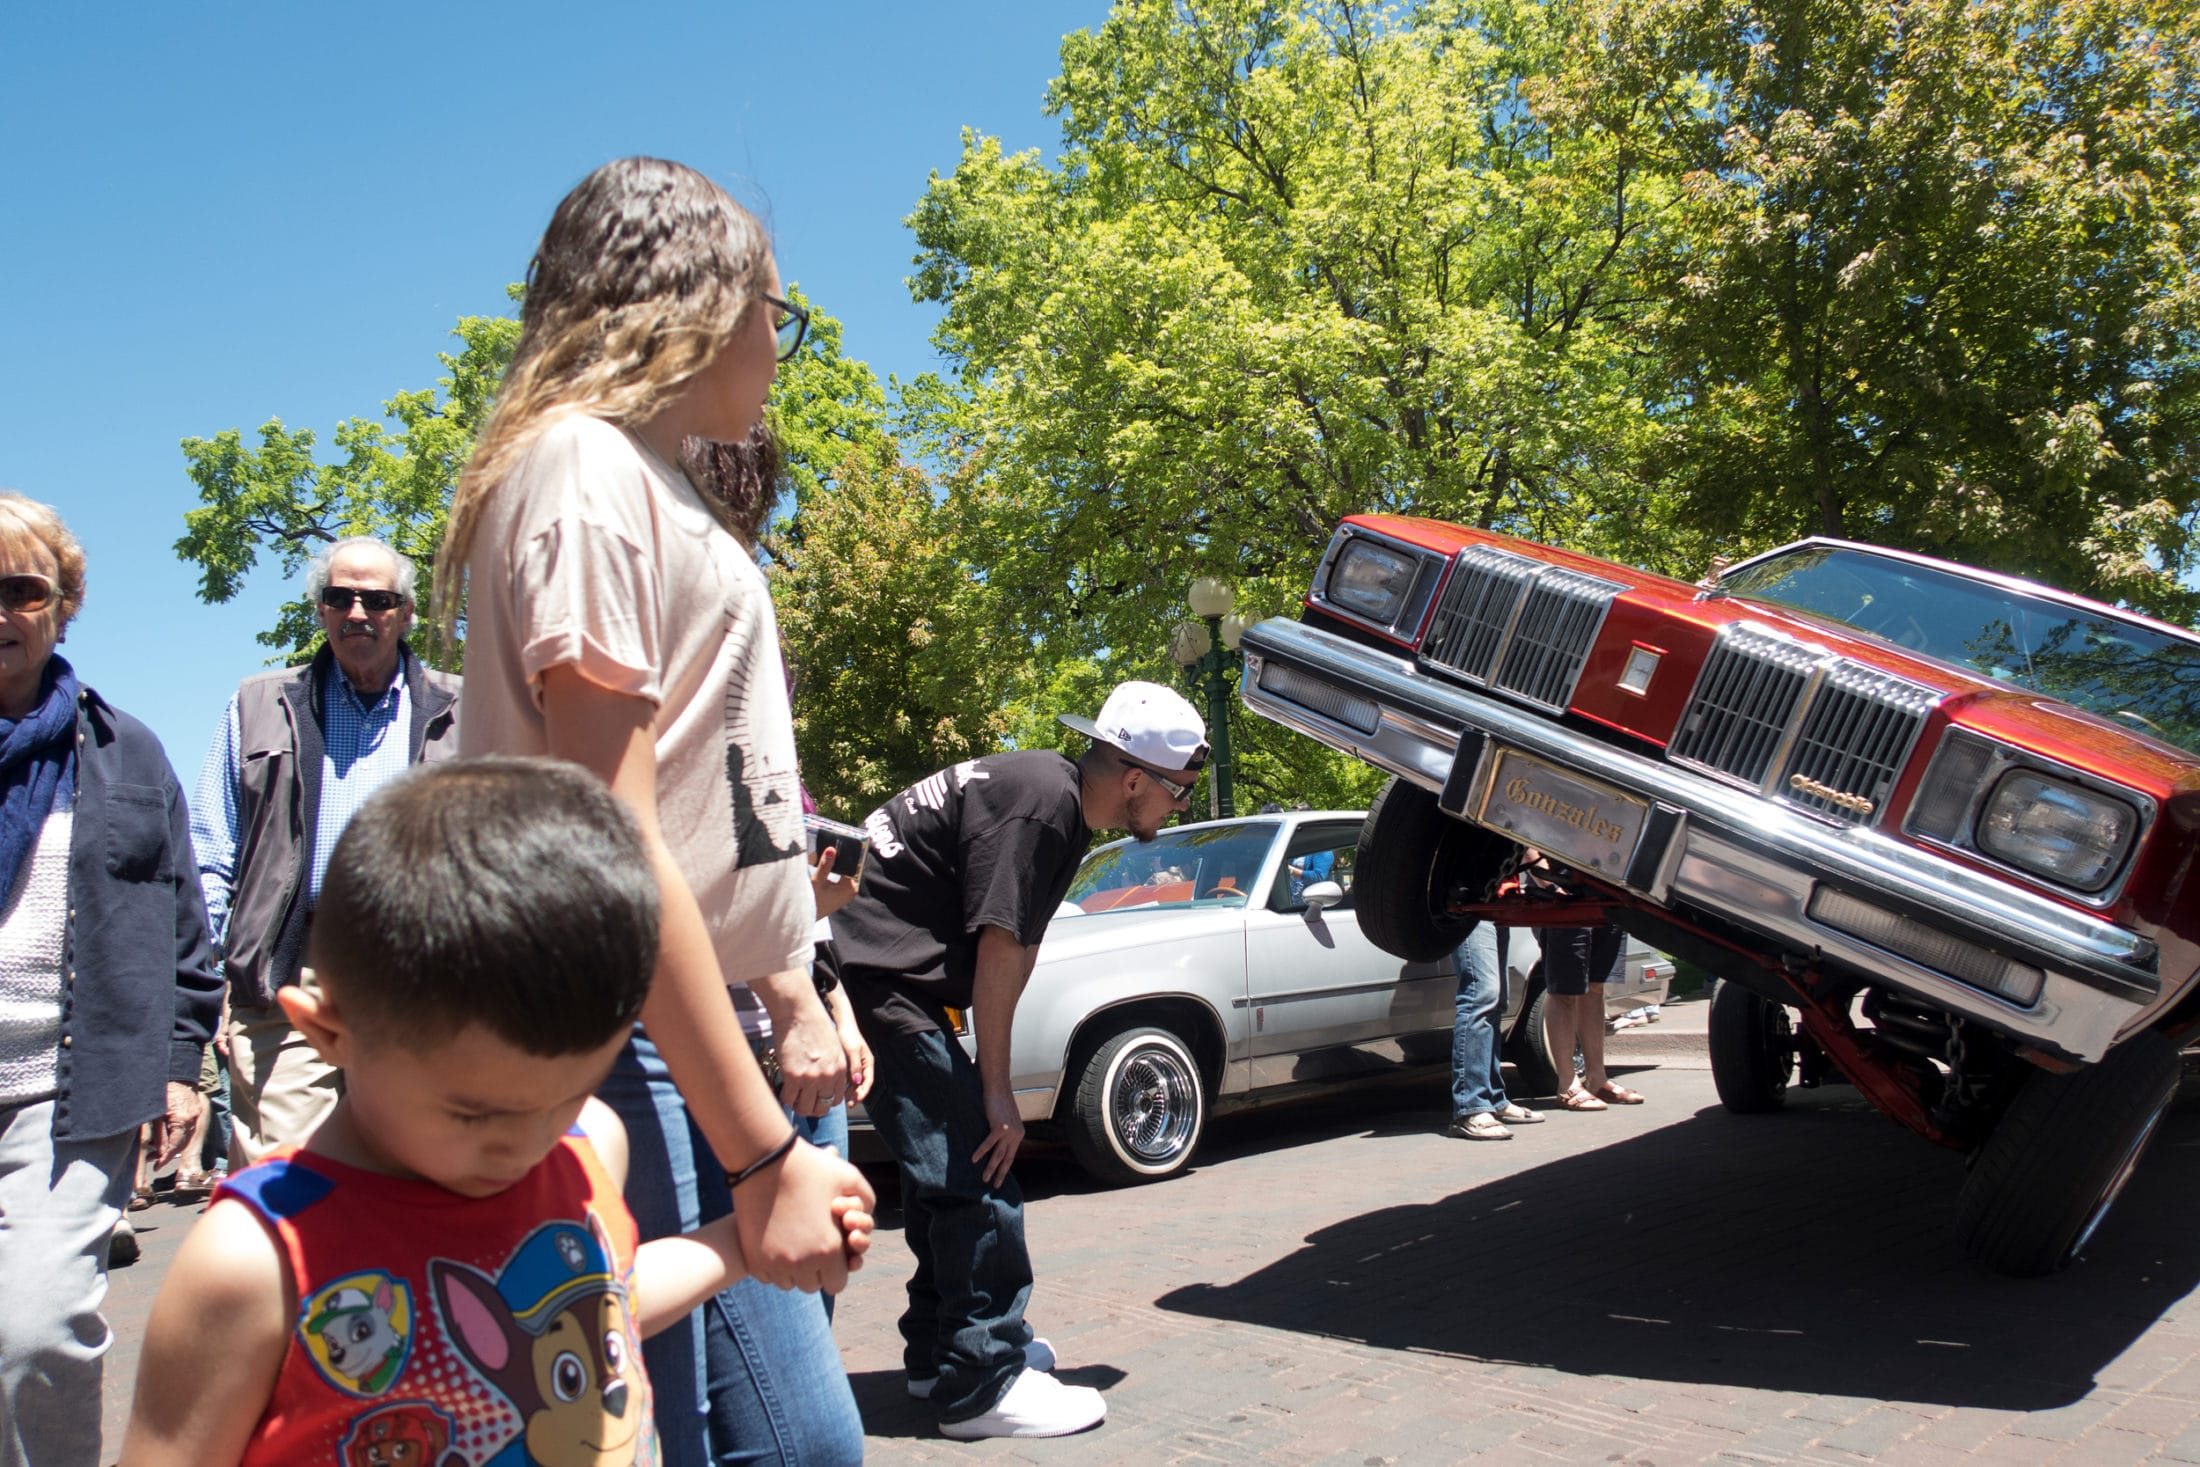 Third Annual Lowrider Day